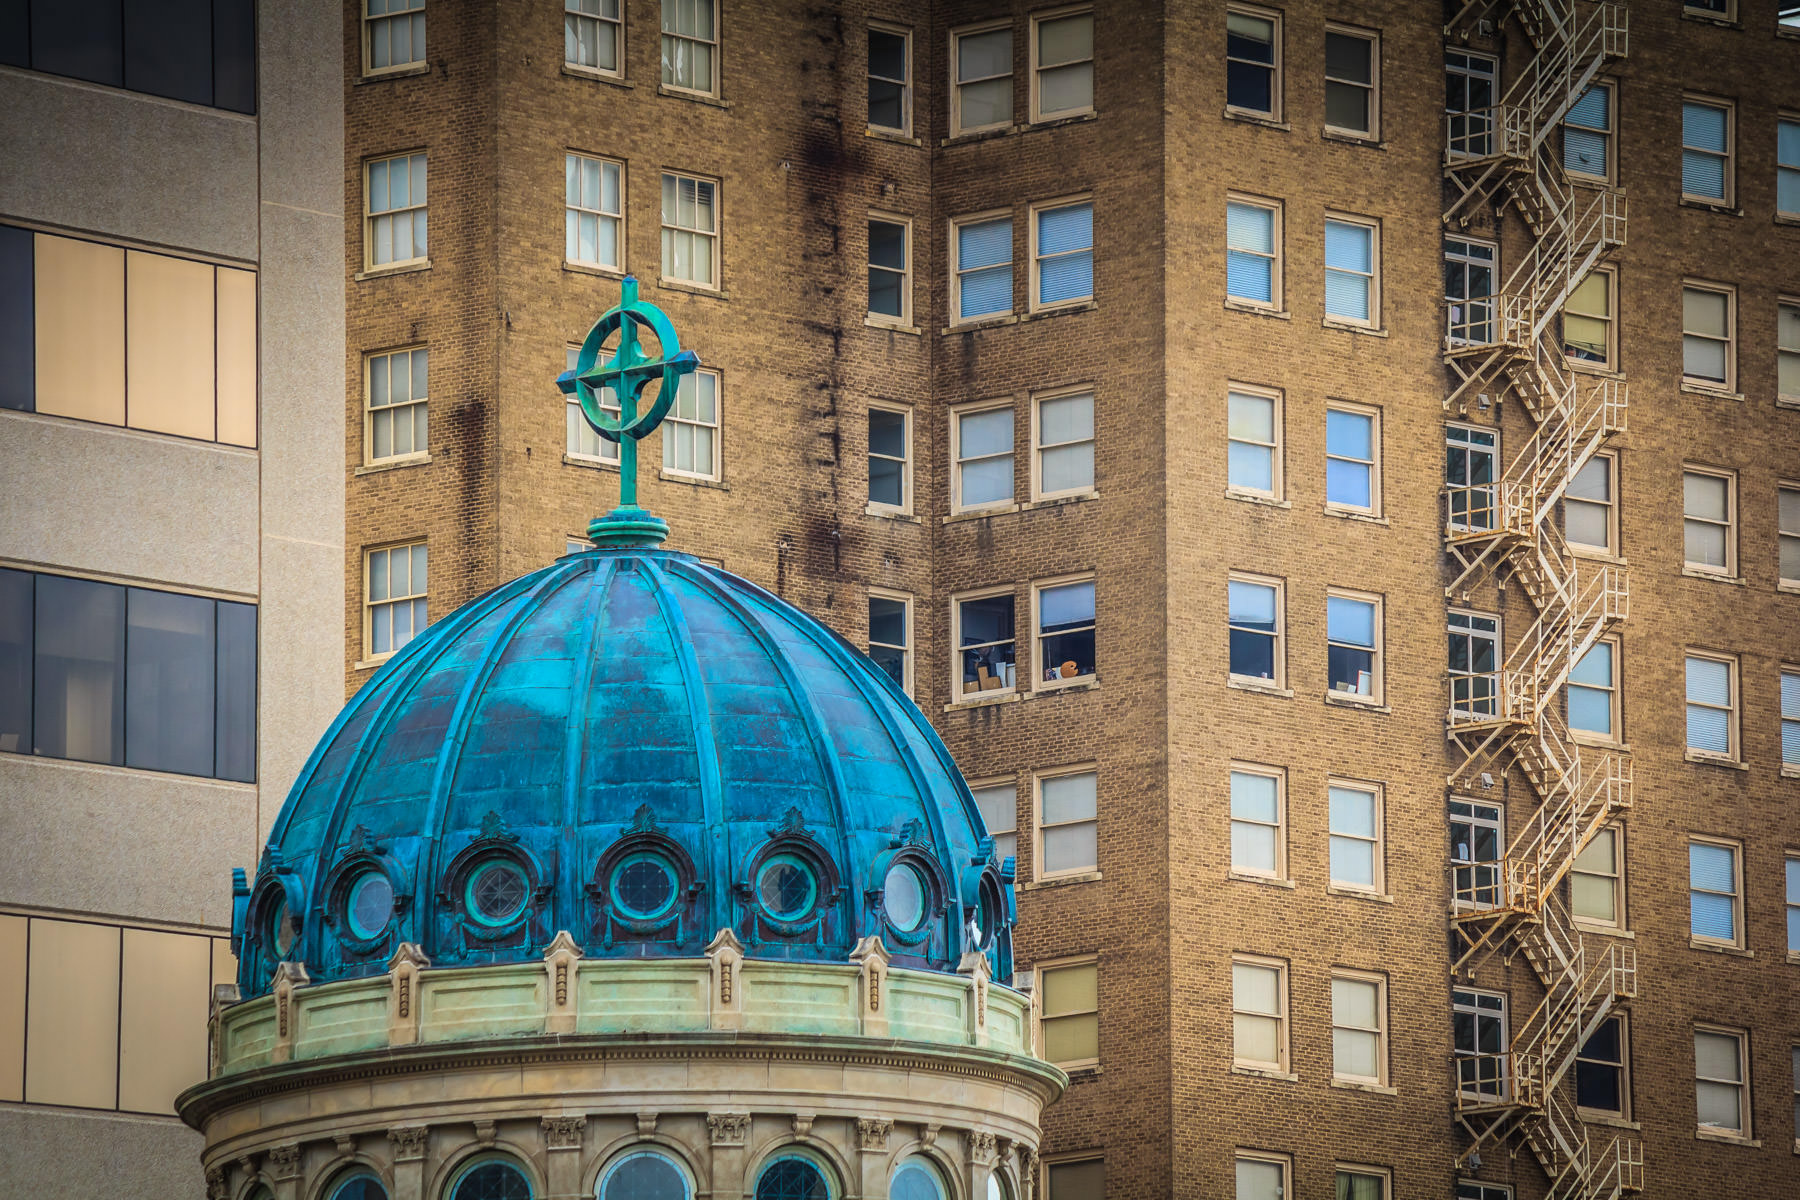 The domed steeple of the First Christian Church in Downtown Fort Worth, Texas.